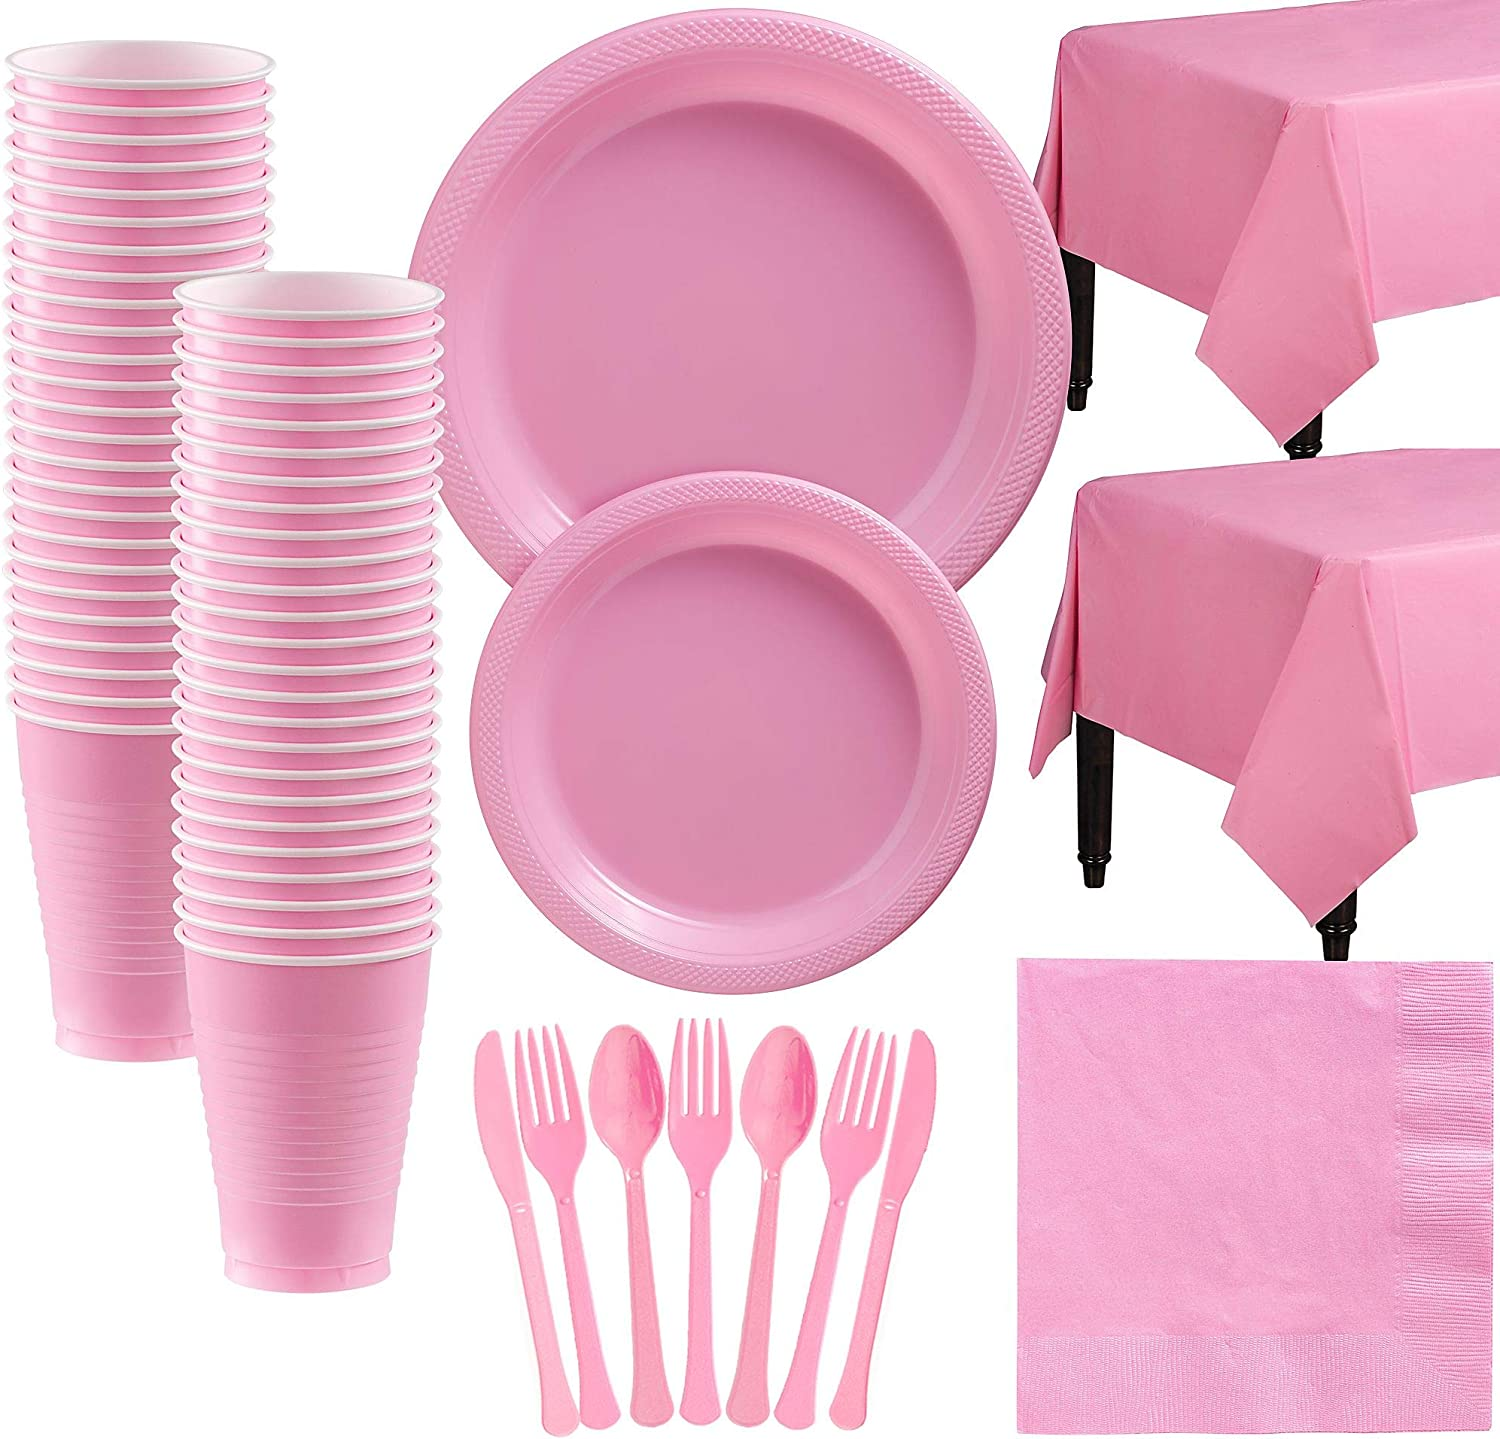 Amscan New Pink Plastic Tableware Kit for 50 Guests, Party Supplies, Includes Table Covers, Plates, Cups and More